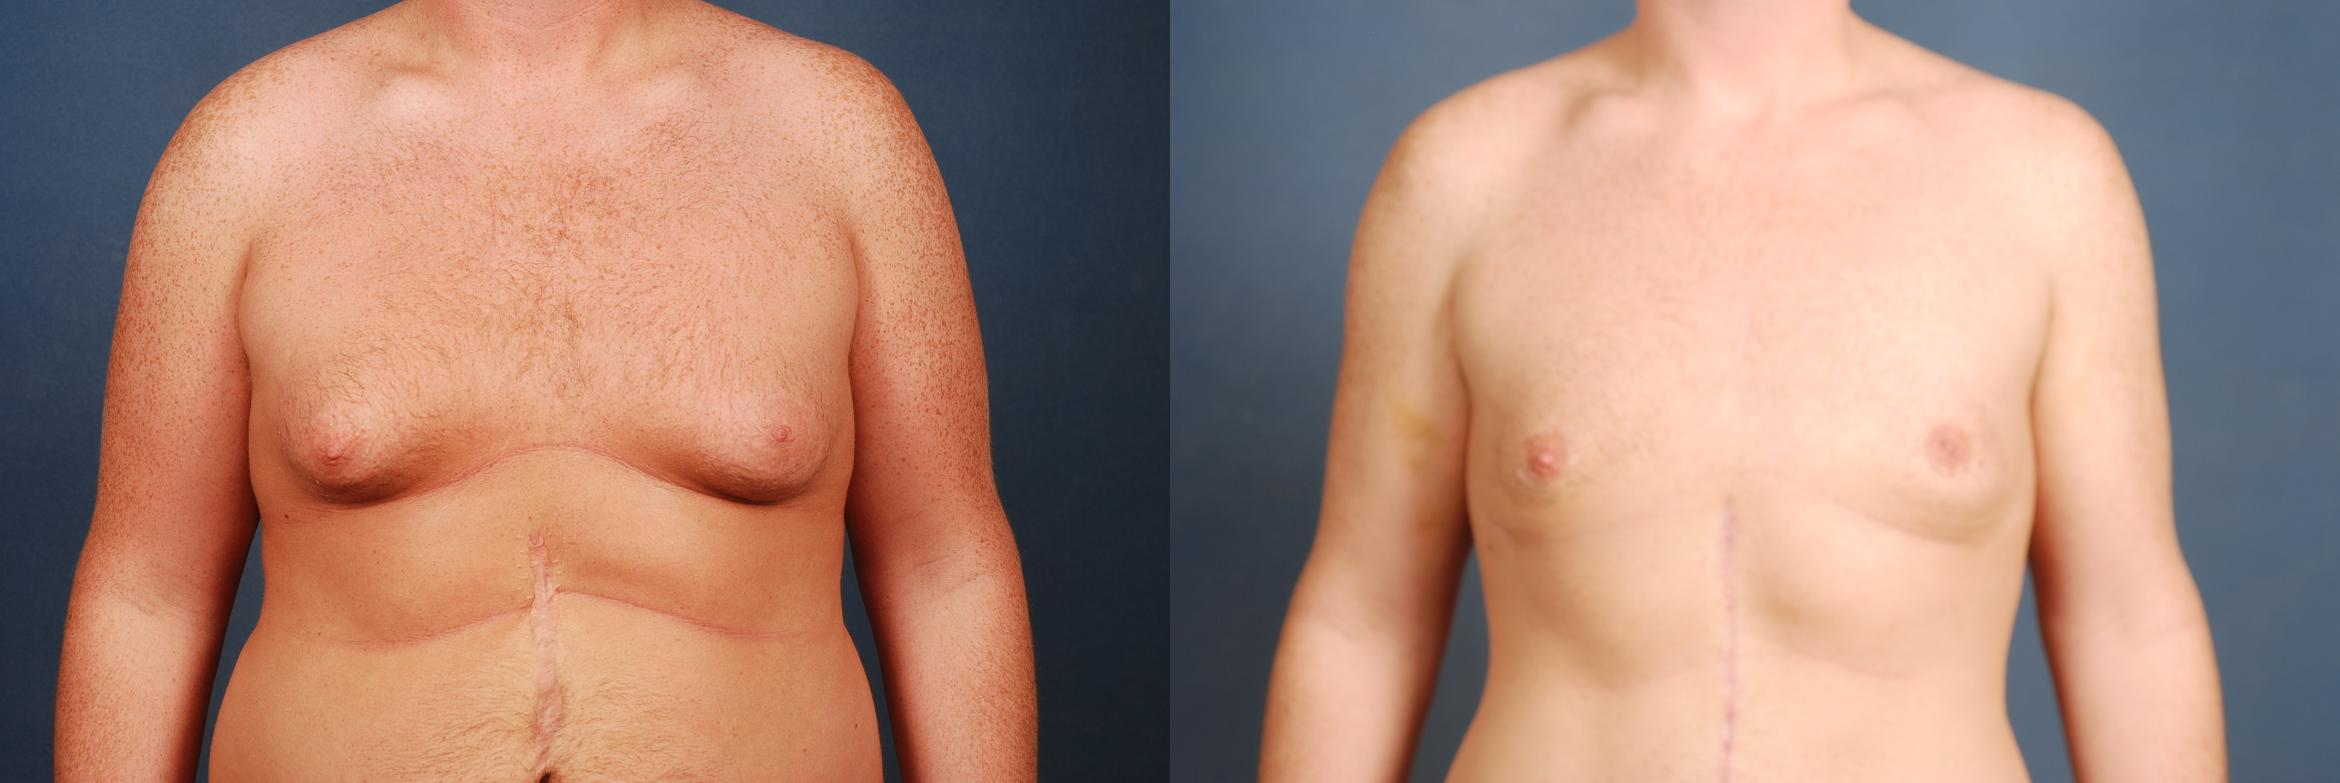 Male Breast Reduction Case 724 Before & After Front | Louisville, KY | CaloAesthetics® Plastic Surgery Center